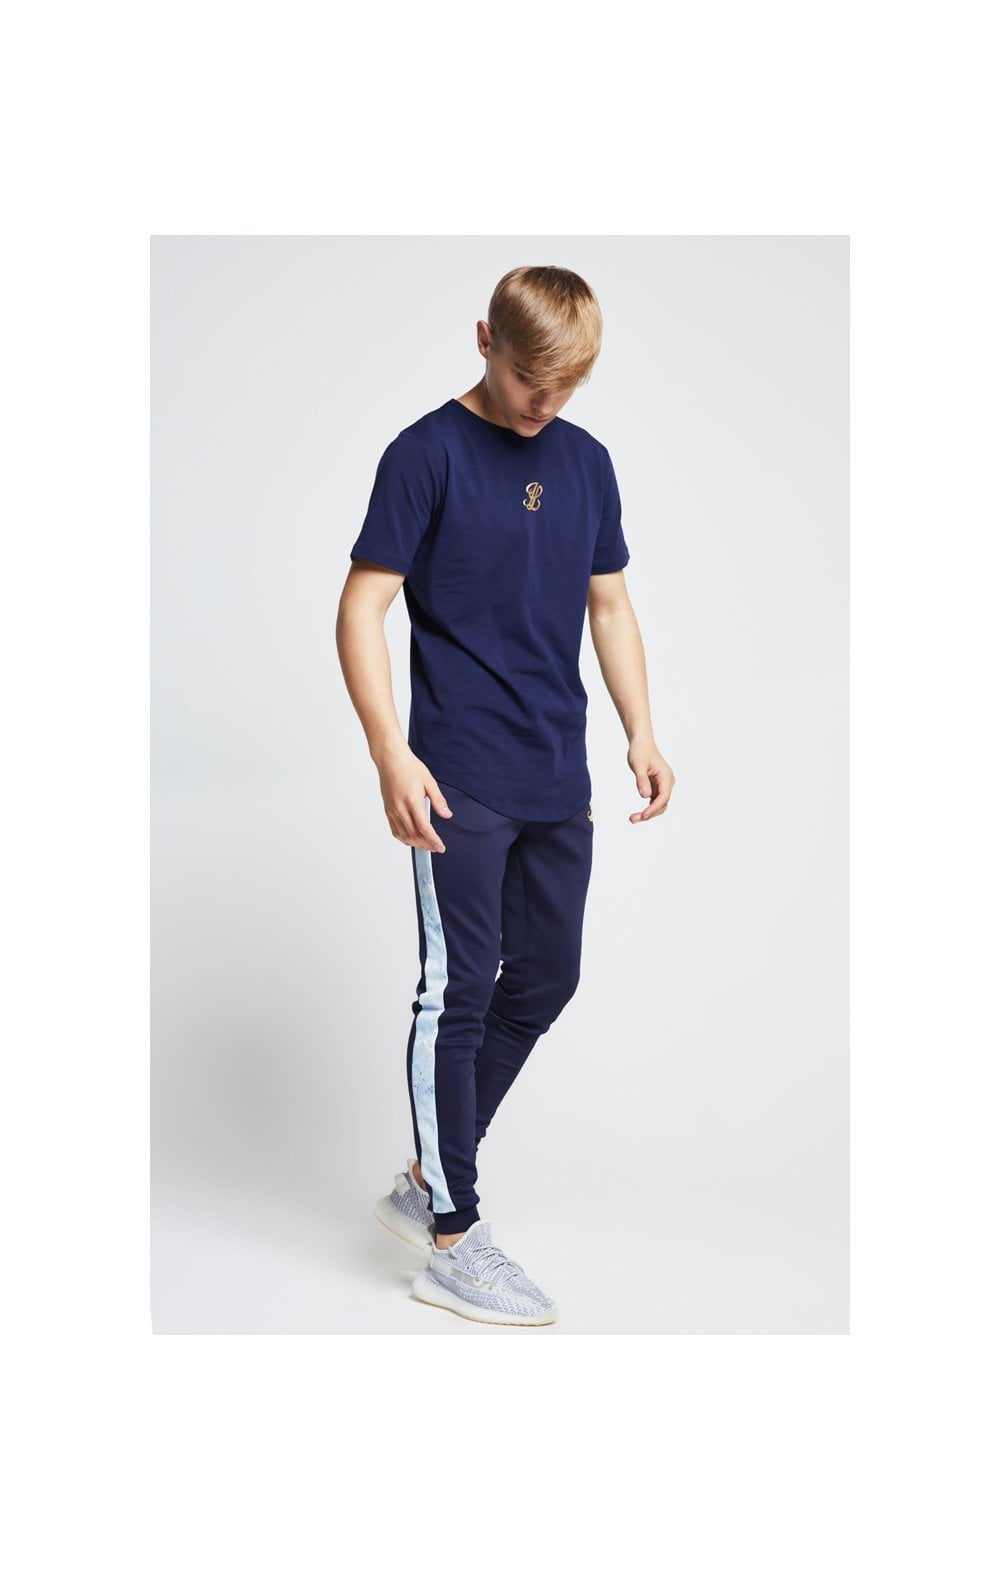 Illusive London Marble Racer Back Tee – Navy & Marble (4)